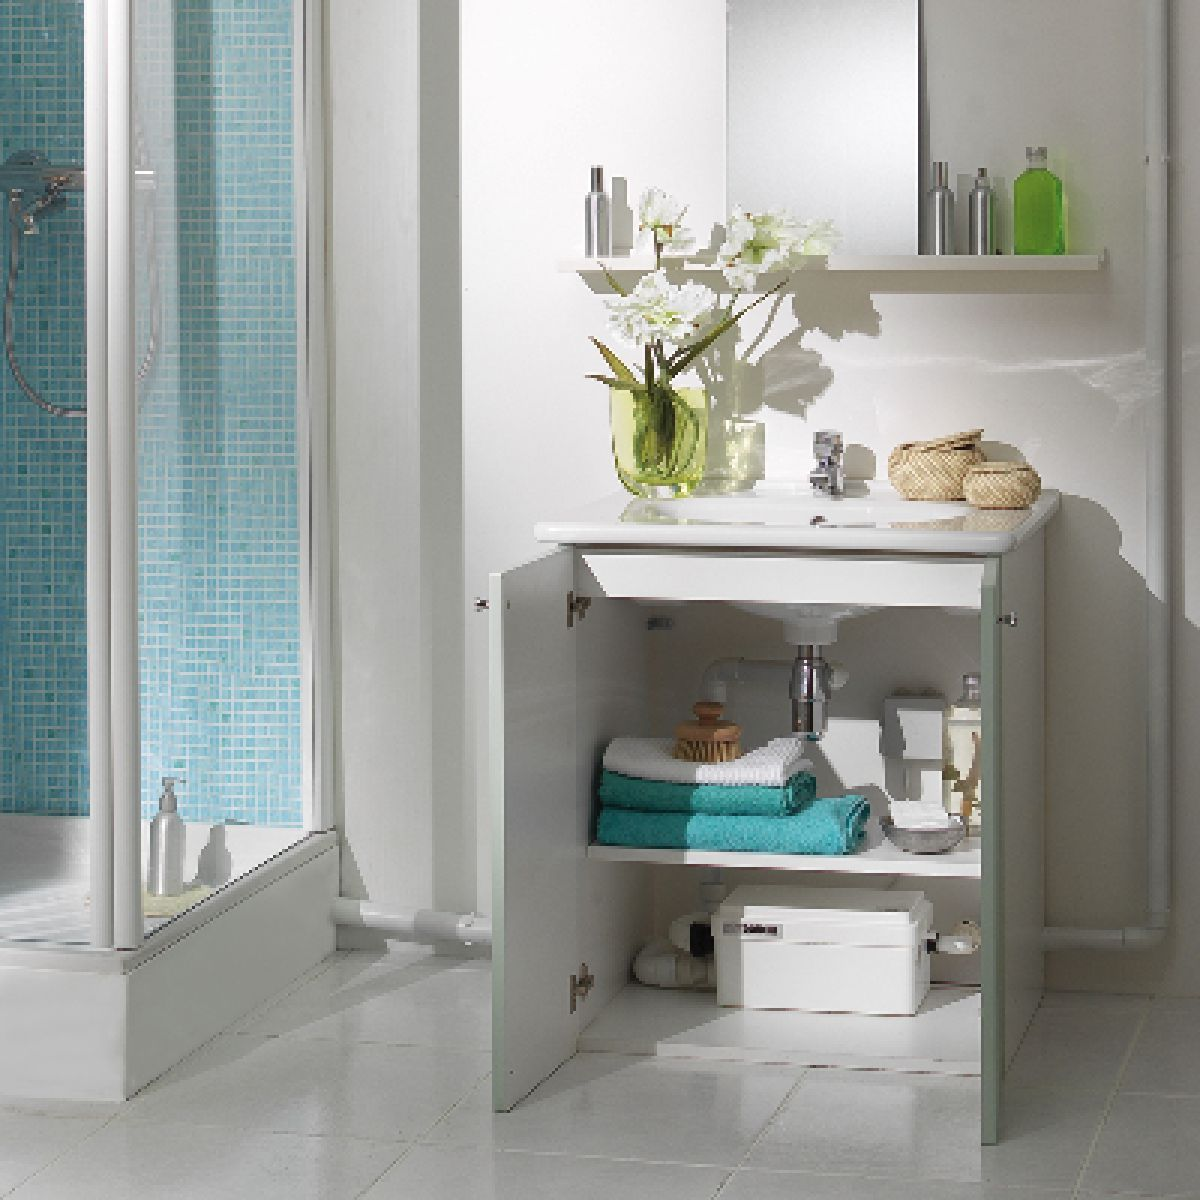 Saniflo Sanishower Flat Pump : UK Bathrooms